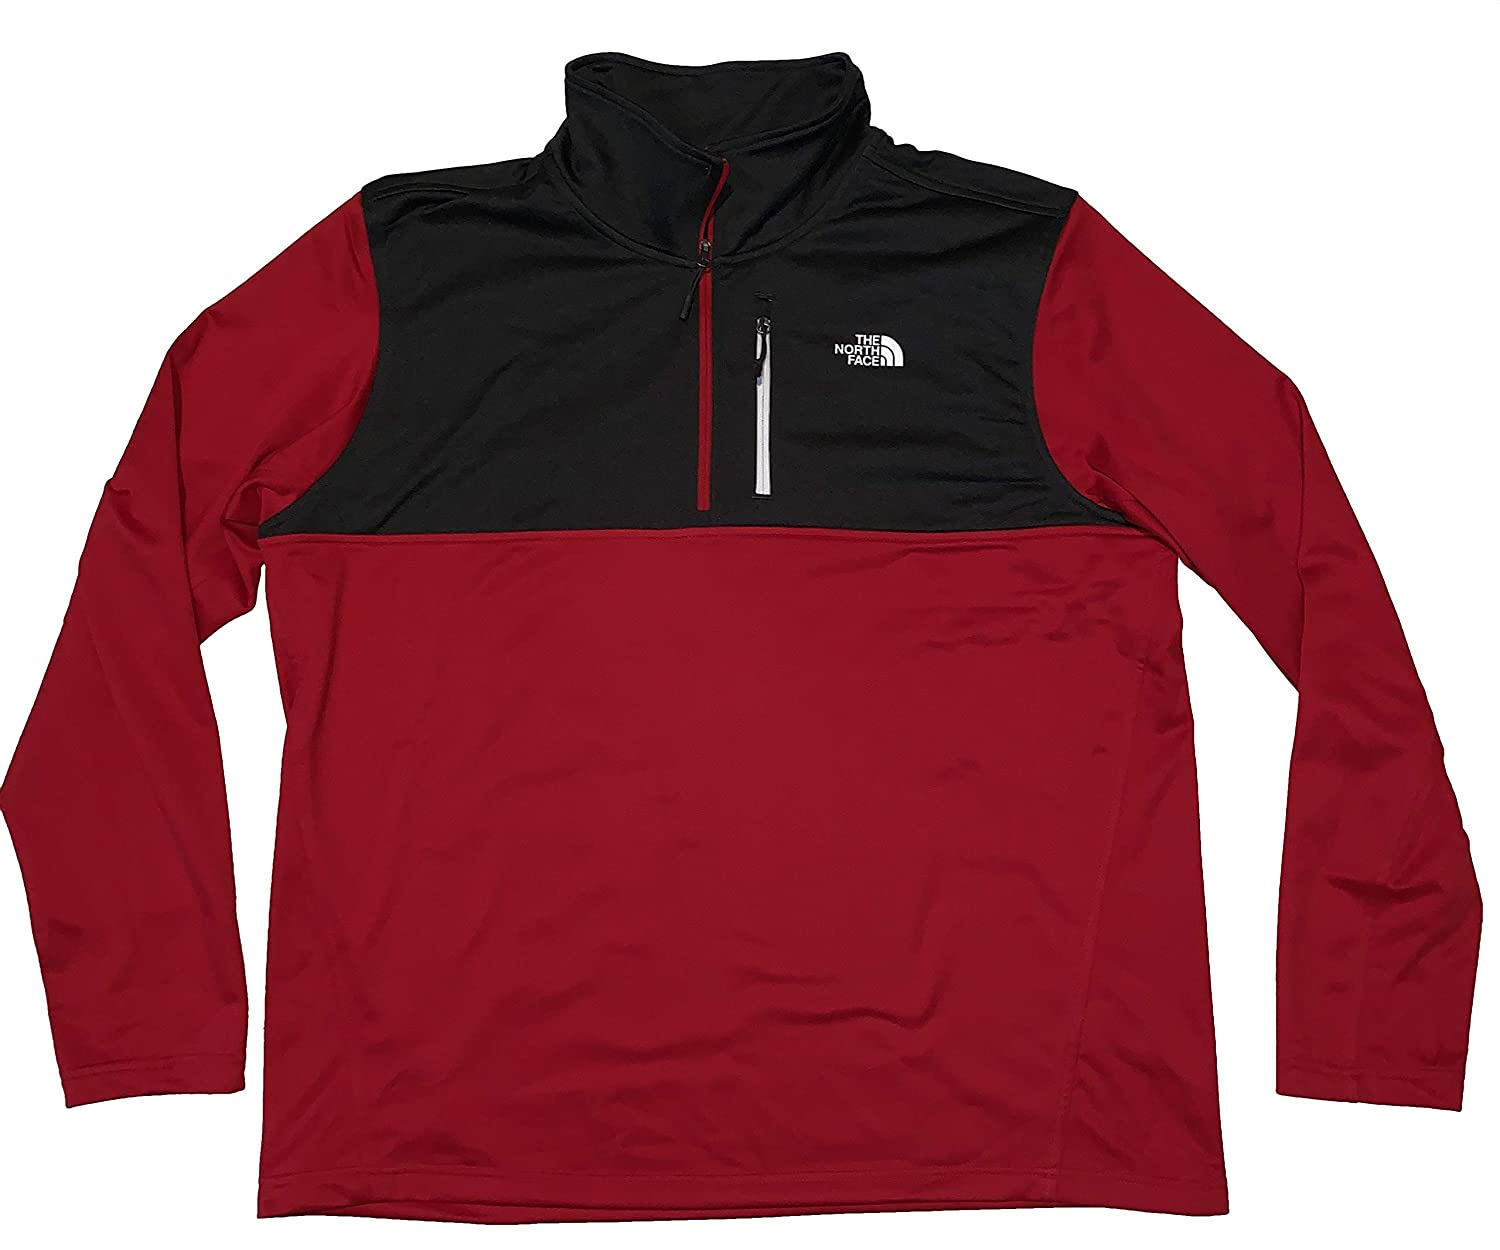 The North Face Men's Standard Fit 100 Cinder Quarter Zip Fleece Lined Long Sleeve Pullover (Red, X-Large)